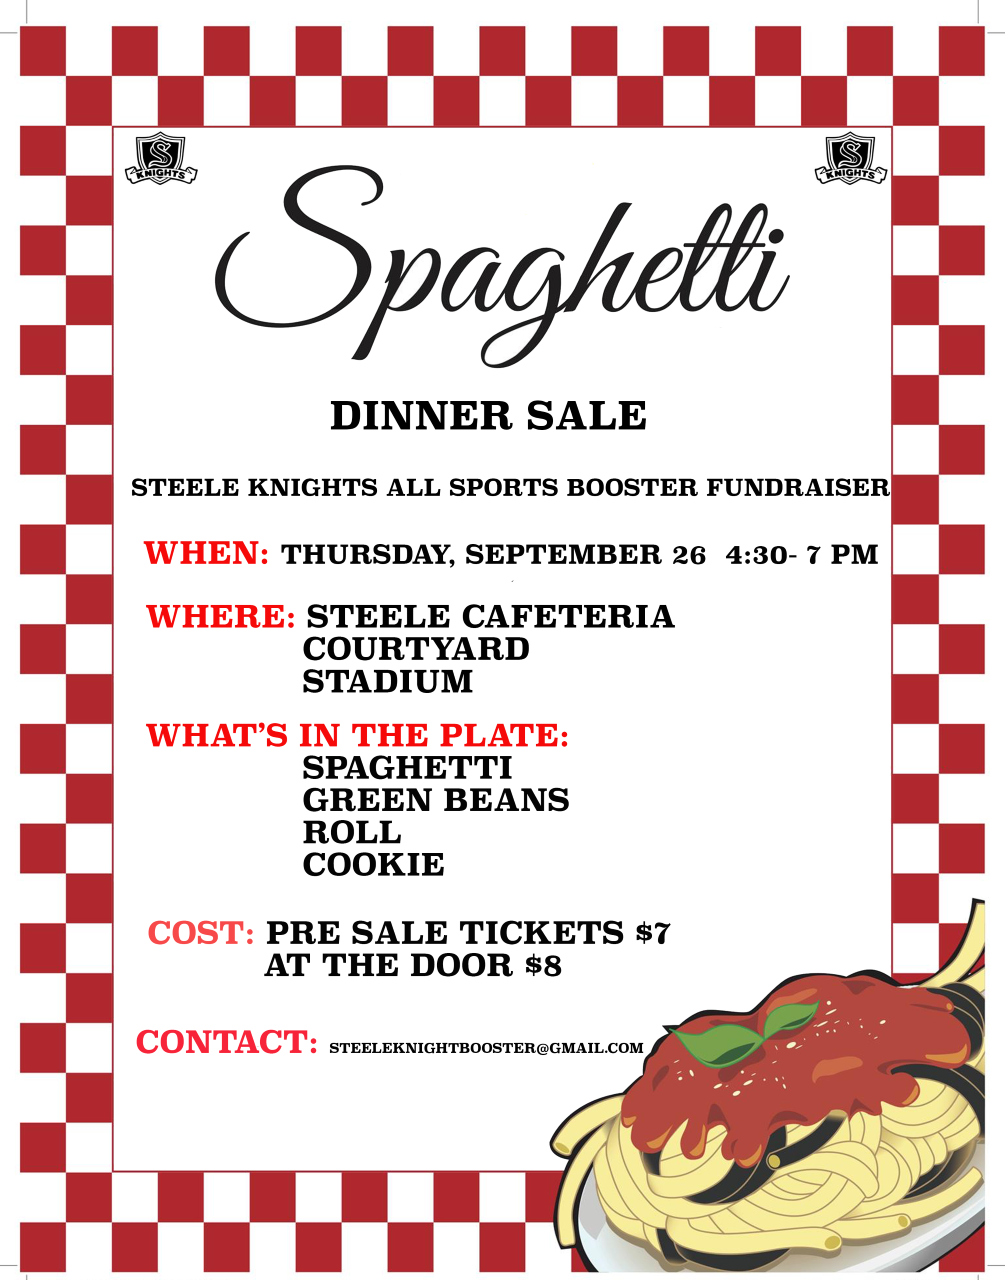 ALL SPORTS BOOSTER FUNDRAISER